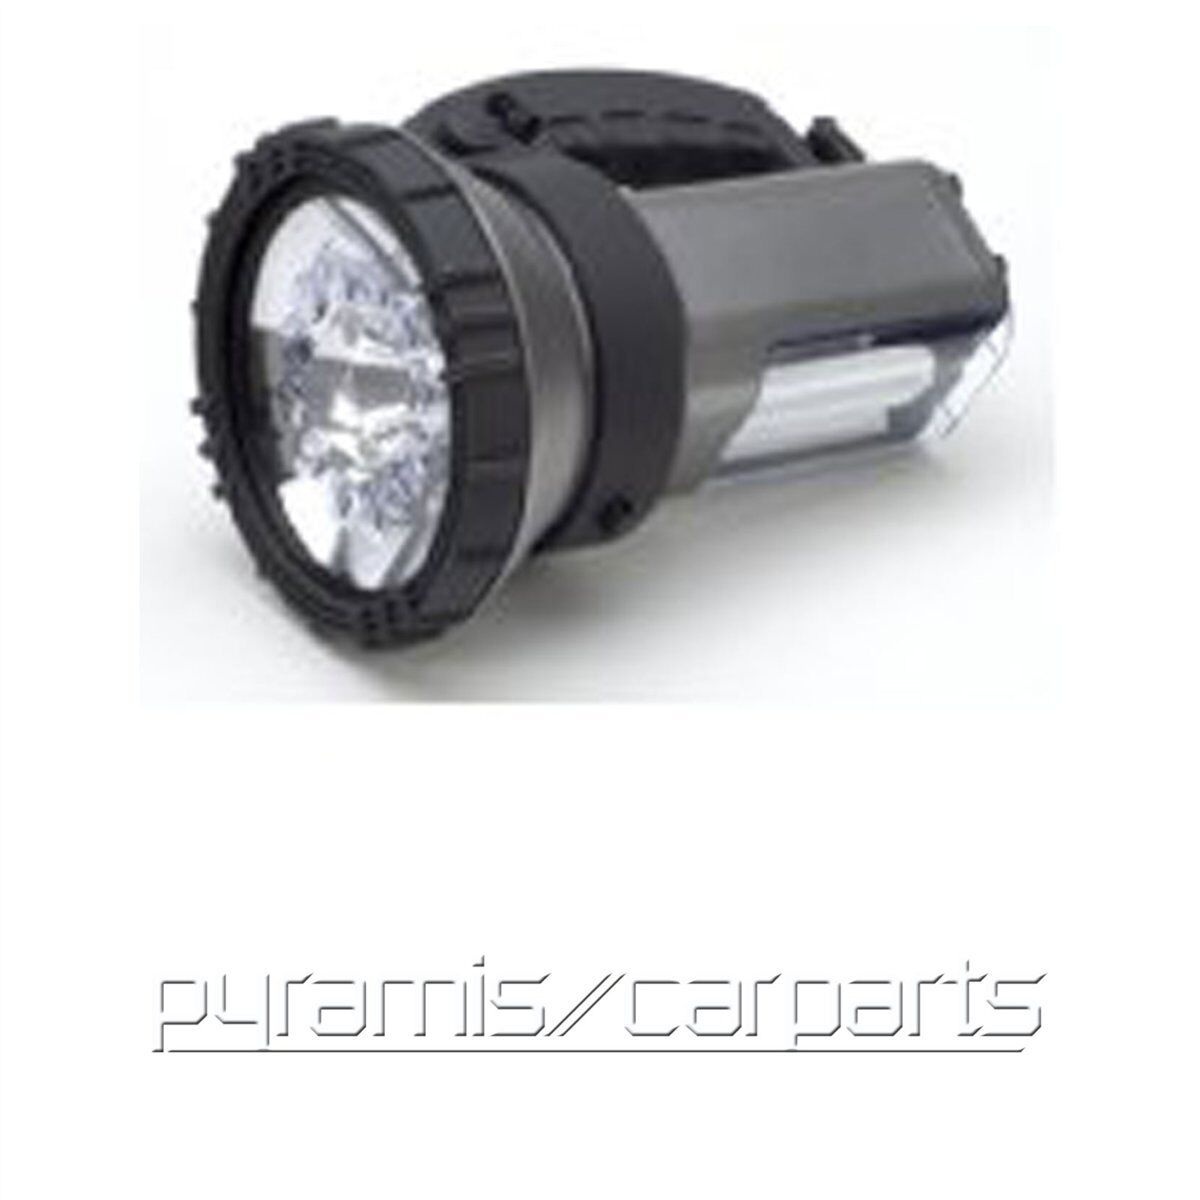 NEU 1x Cartrend 80104 Superlampe 3 in 1 LED